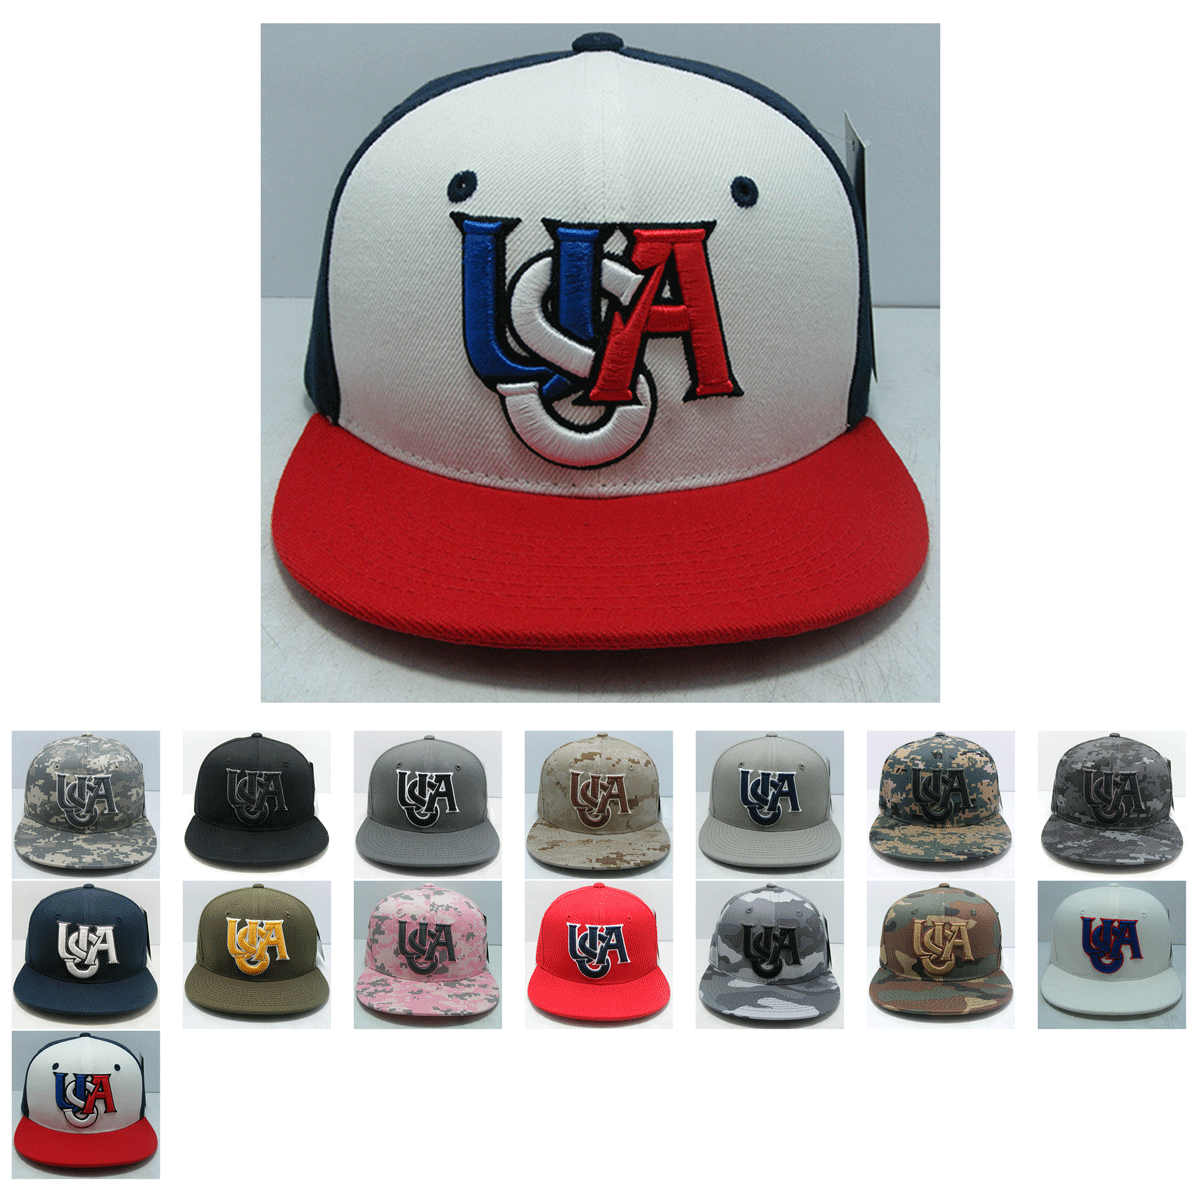 The Wholesale Usa America Snapback Flat Bill Hat S019 Features 3 D High Definition Embroidery A Retro Flat Bill Cotton Sweatba Flat Bill Hats Snapback Hats